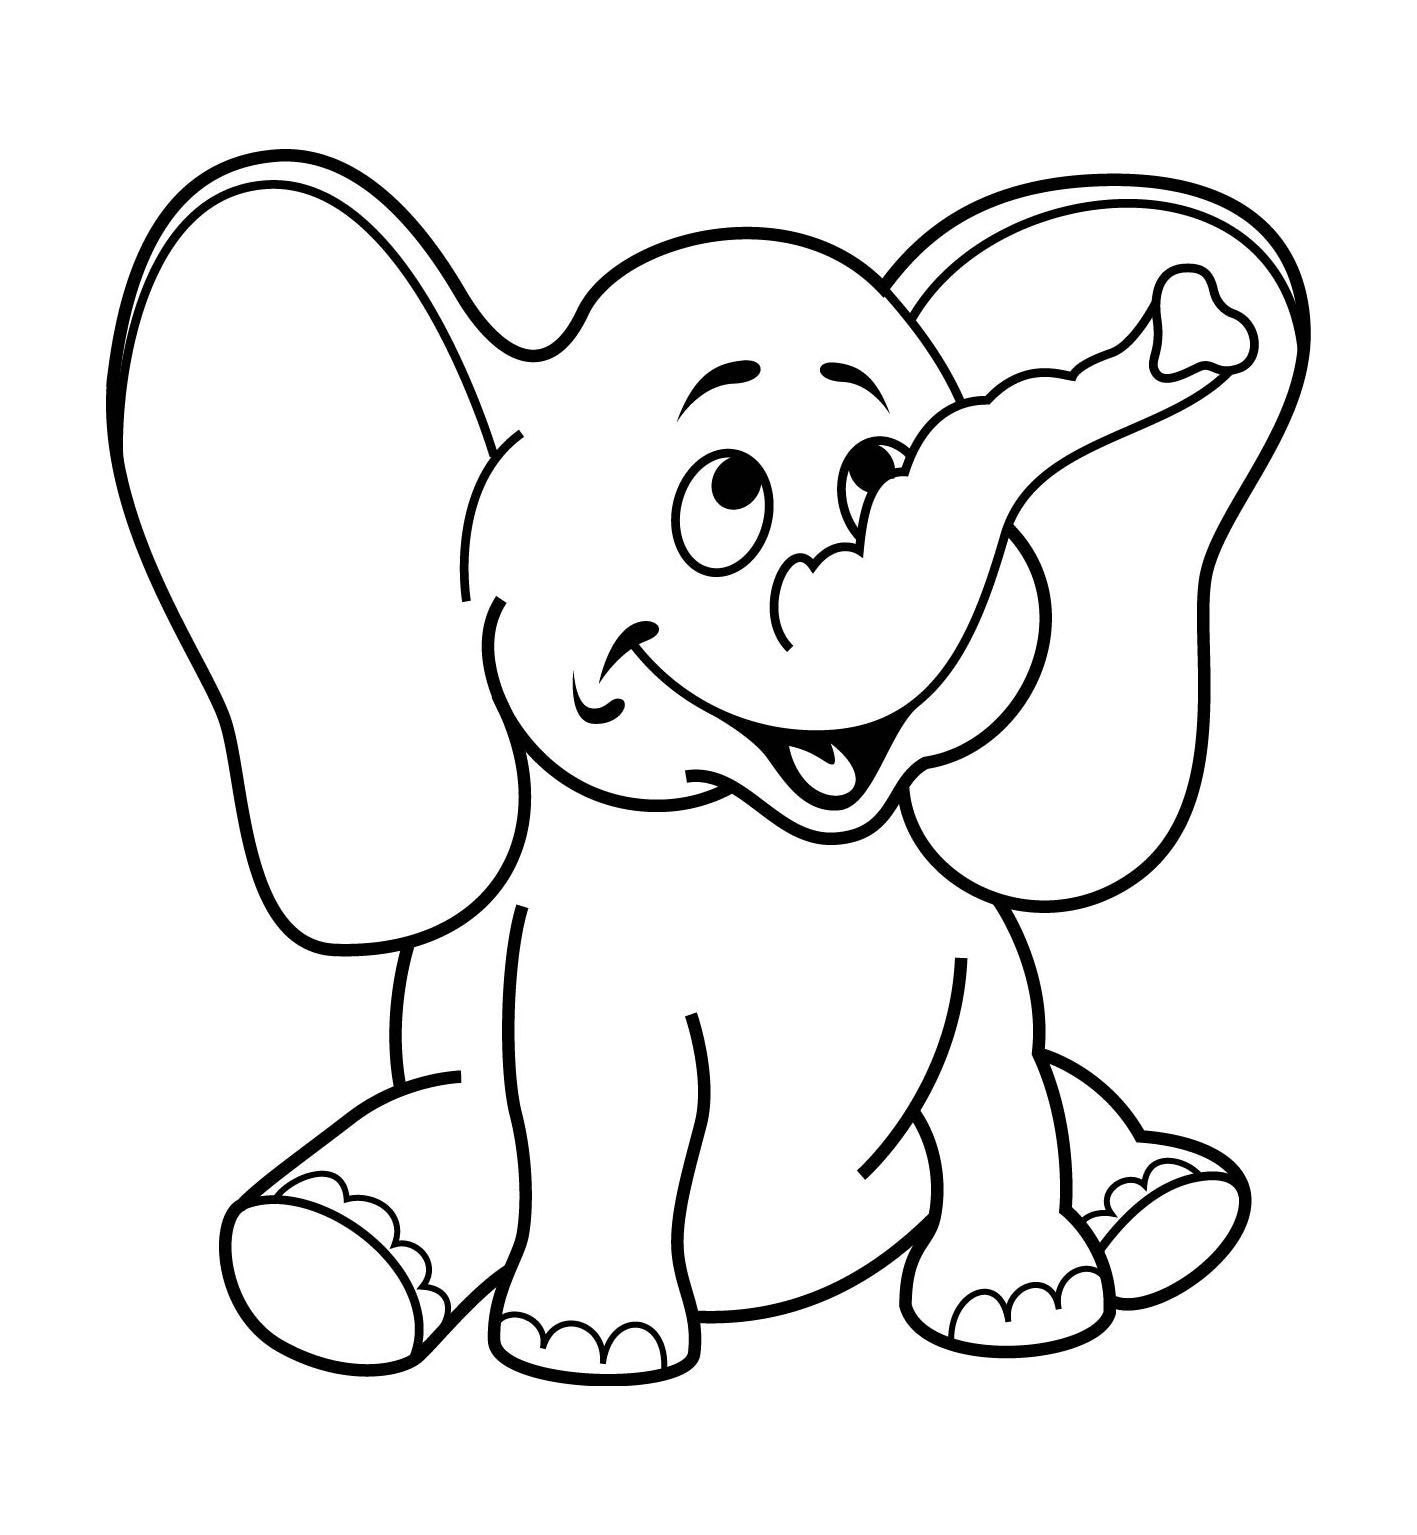 Image Result For Printable 2 Year Old Activities | Worksheets | Diy - Free Printable Coloring Pages For 2 Year Olds